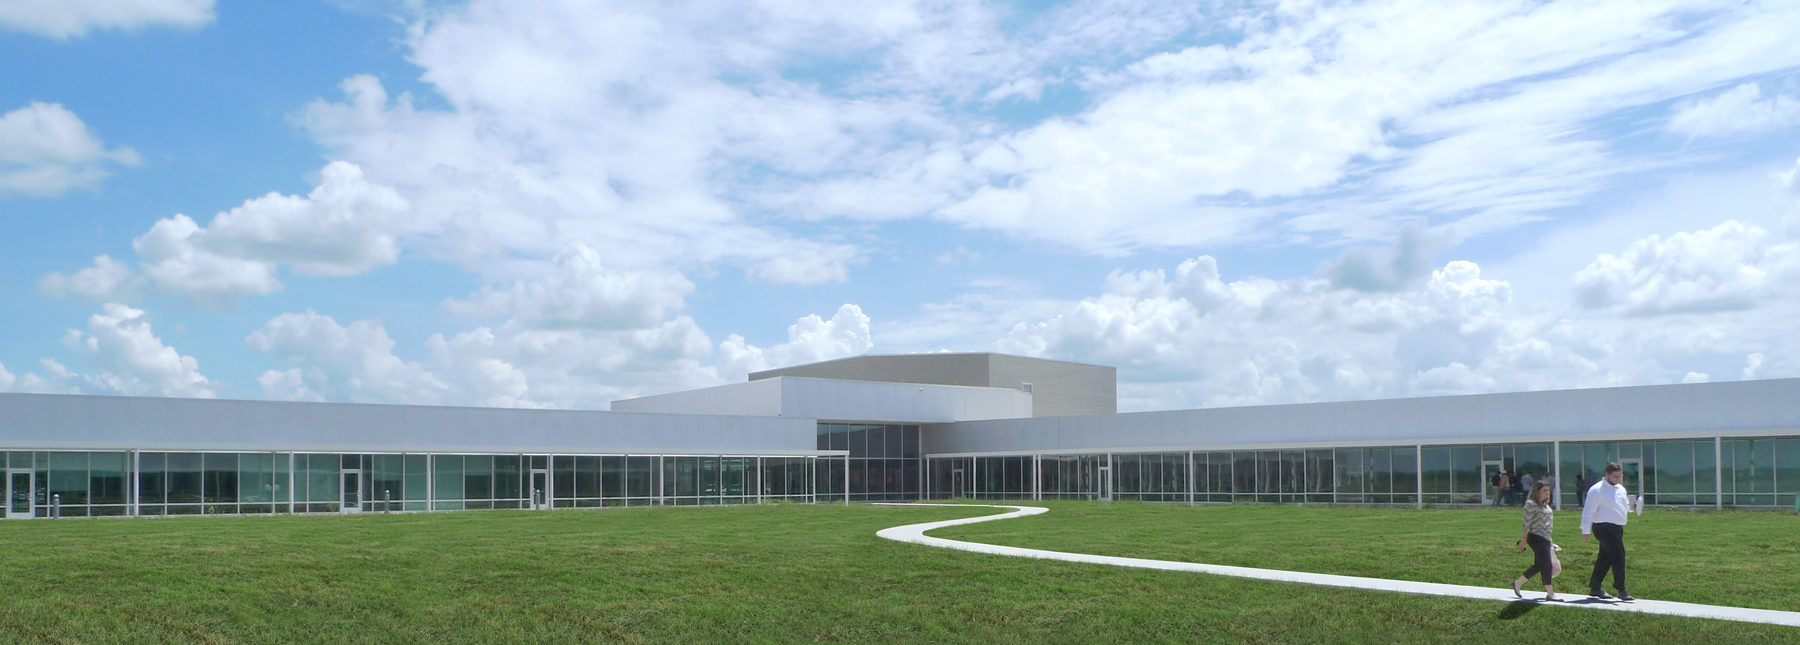 Tenaris University learning Center, Houston